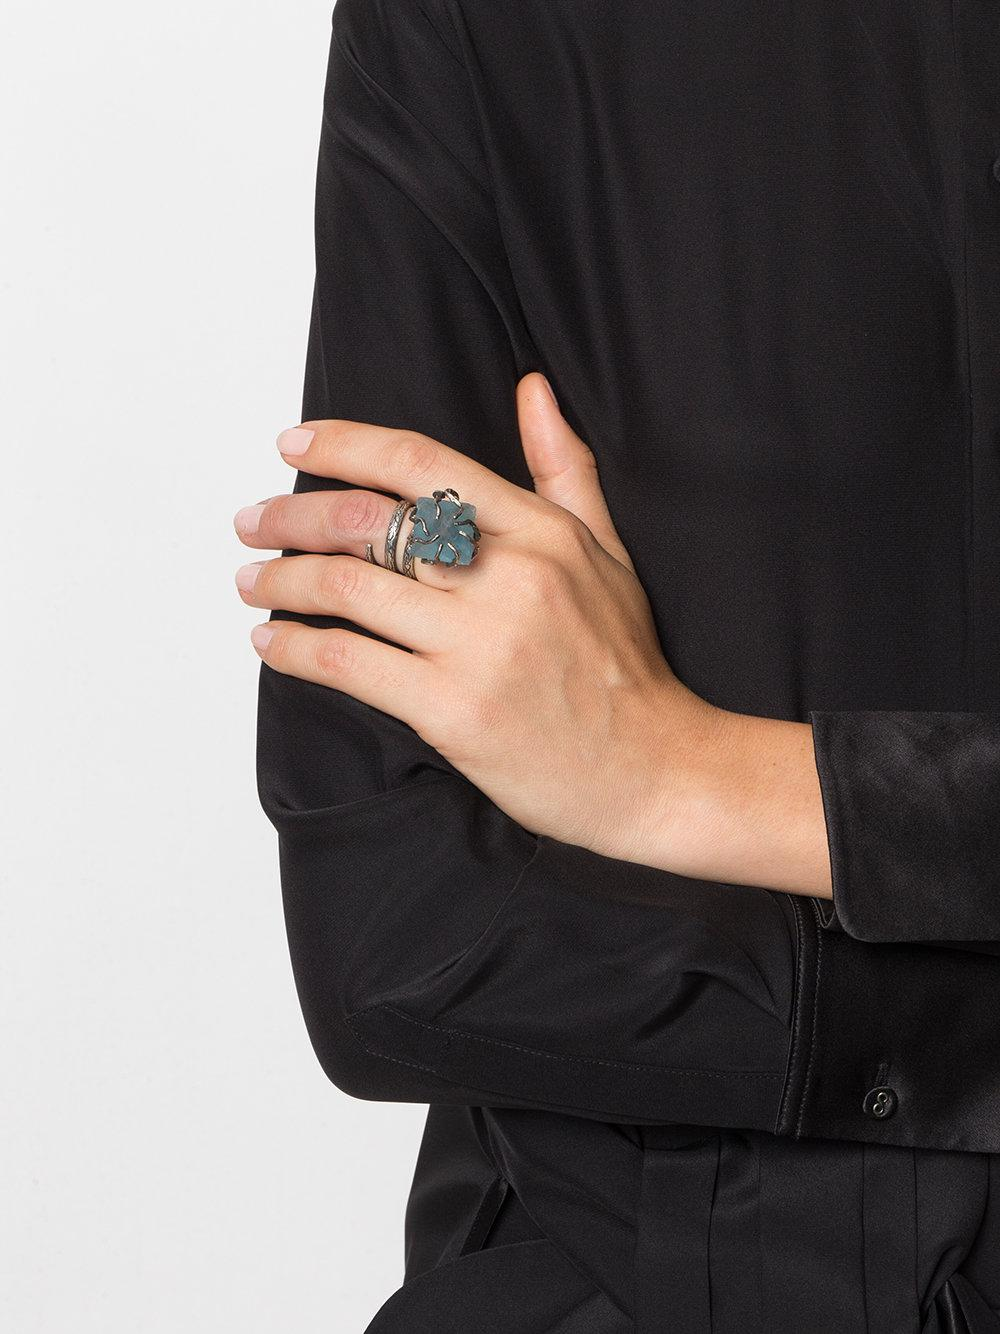 Midgard Paris Roots Ring in Metallic